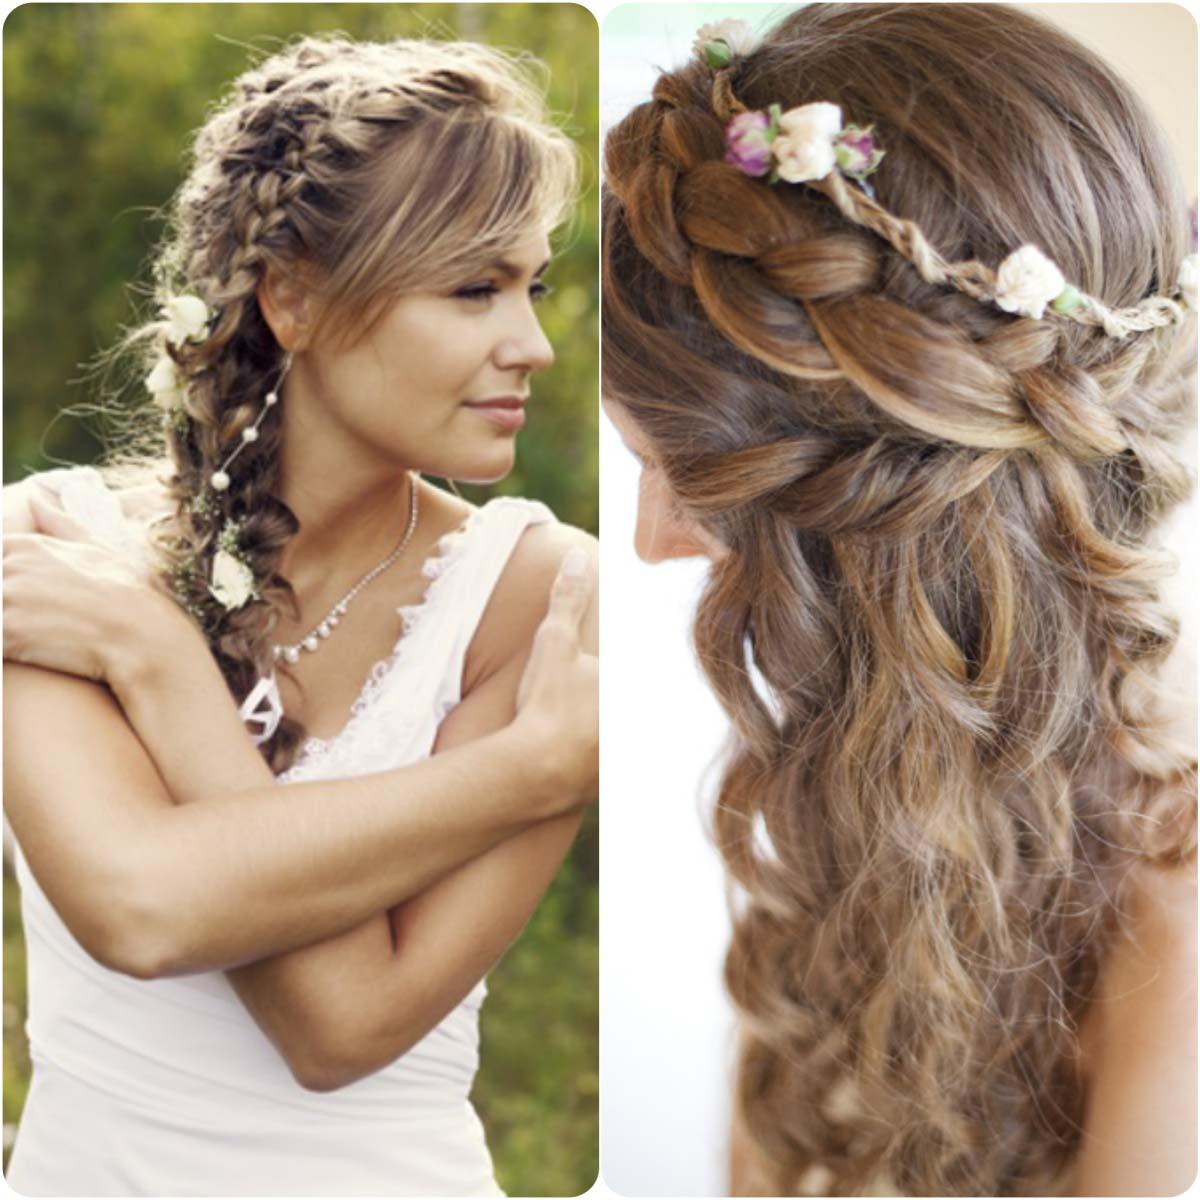 Wedding Hairstyles Braid: 20 Braided Hairstyles For Wedding Brides 2016